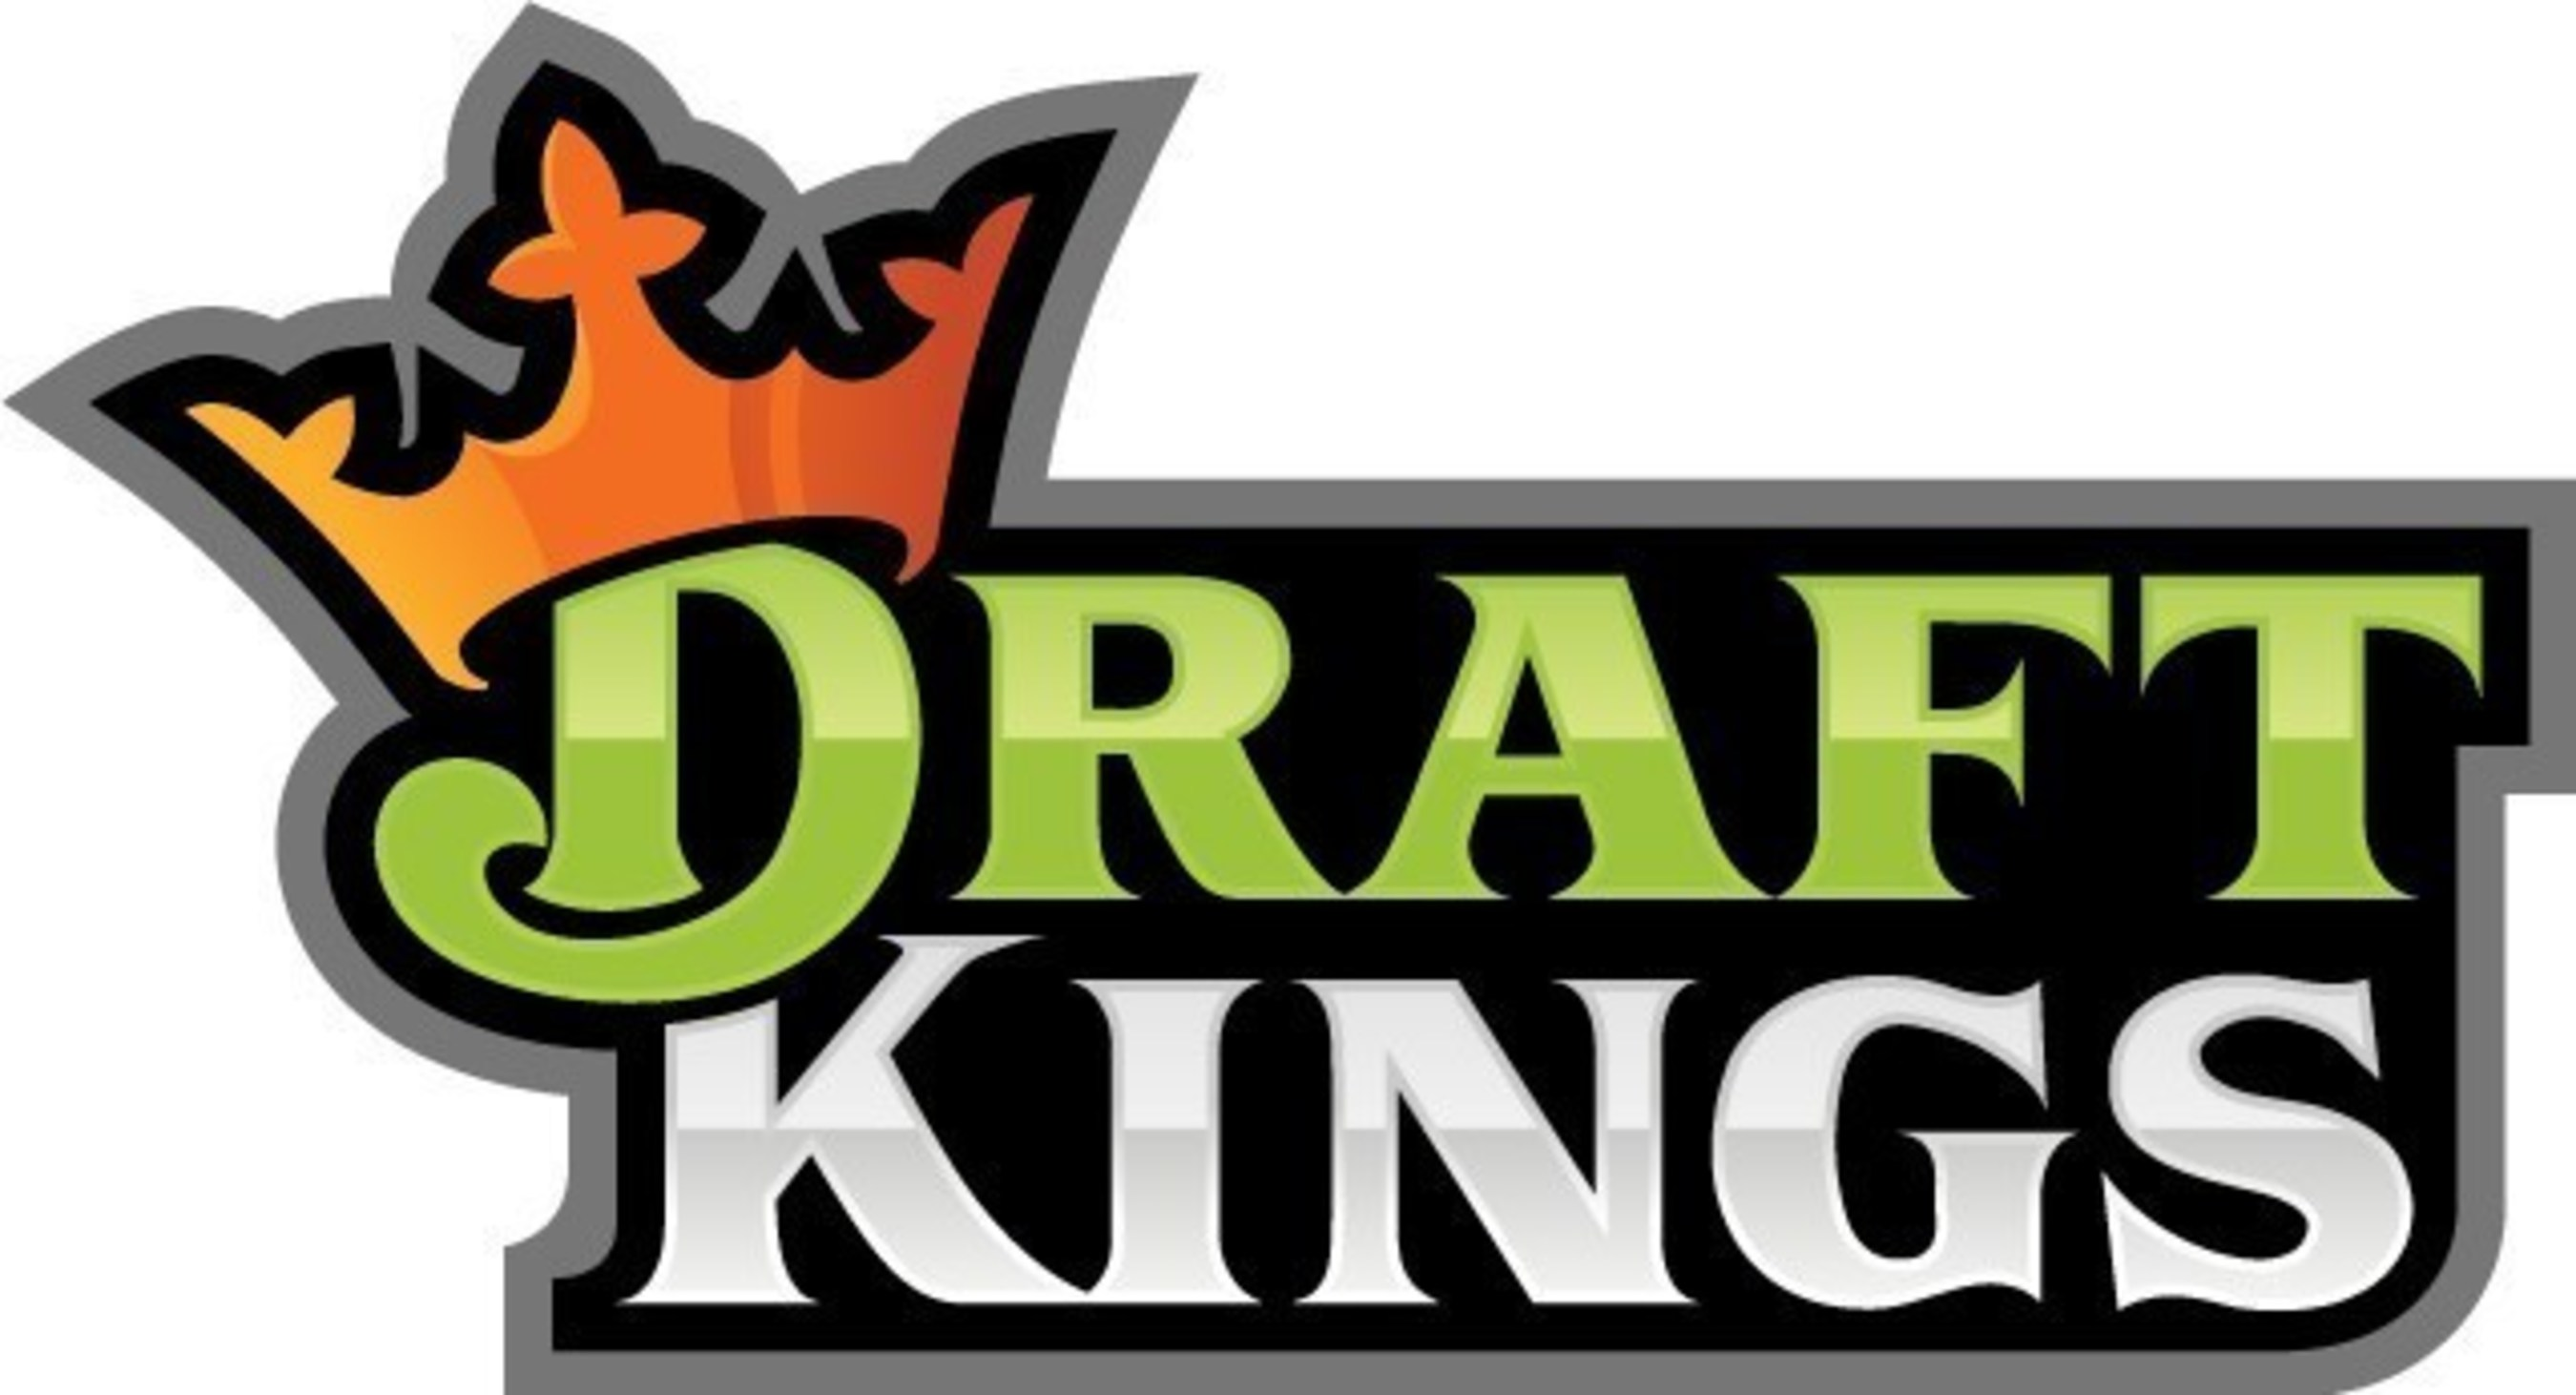 DraftKings Releases Findings of Independent Investigation Conducted by Greenberg Traurig into Incident Involving Company Employee, Ethan Haskell